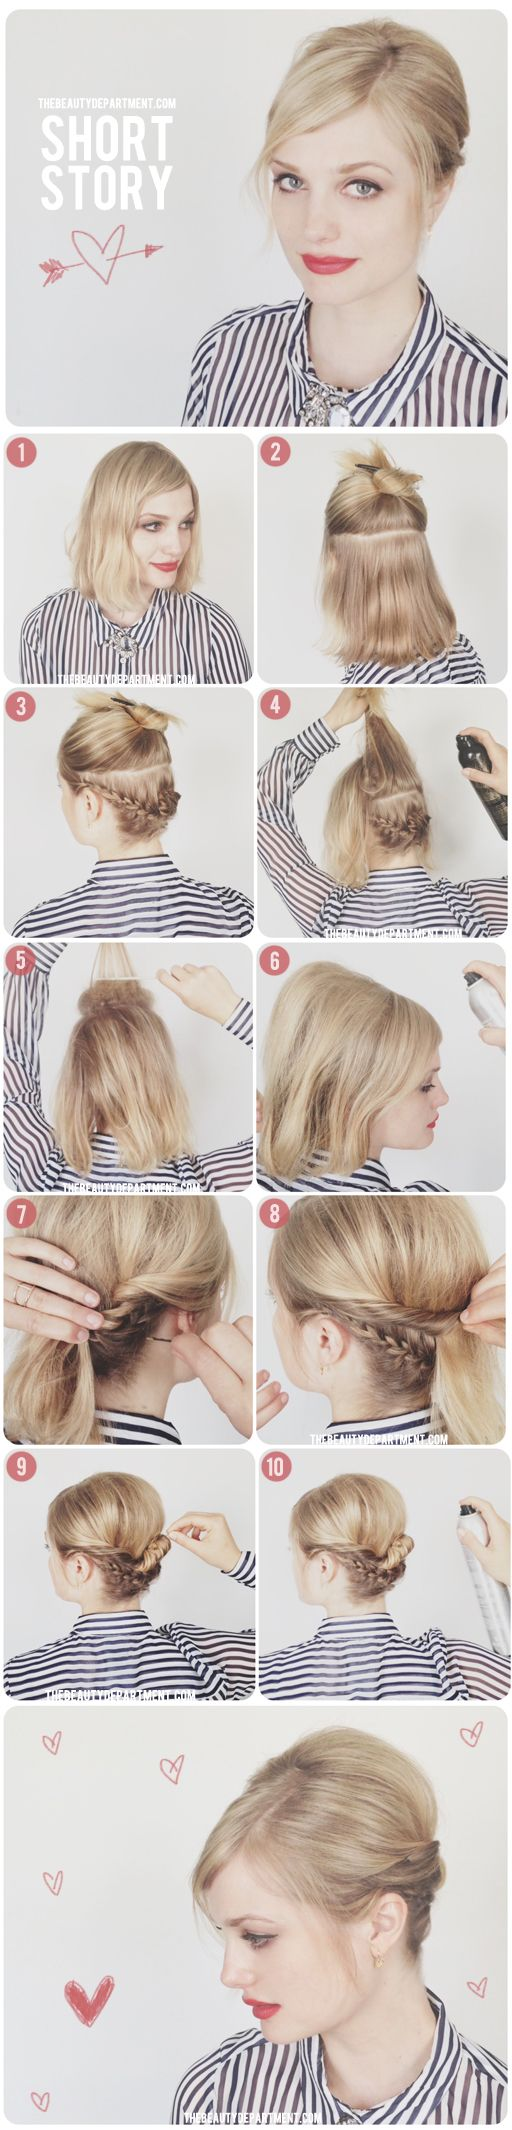 braid short hair8